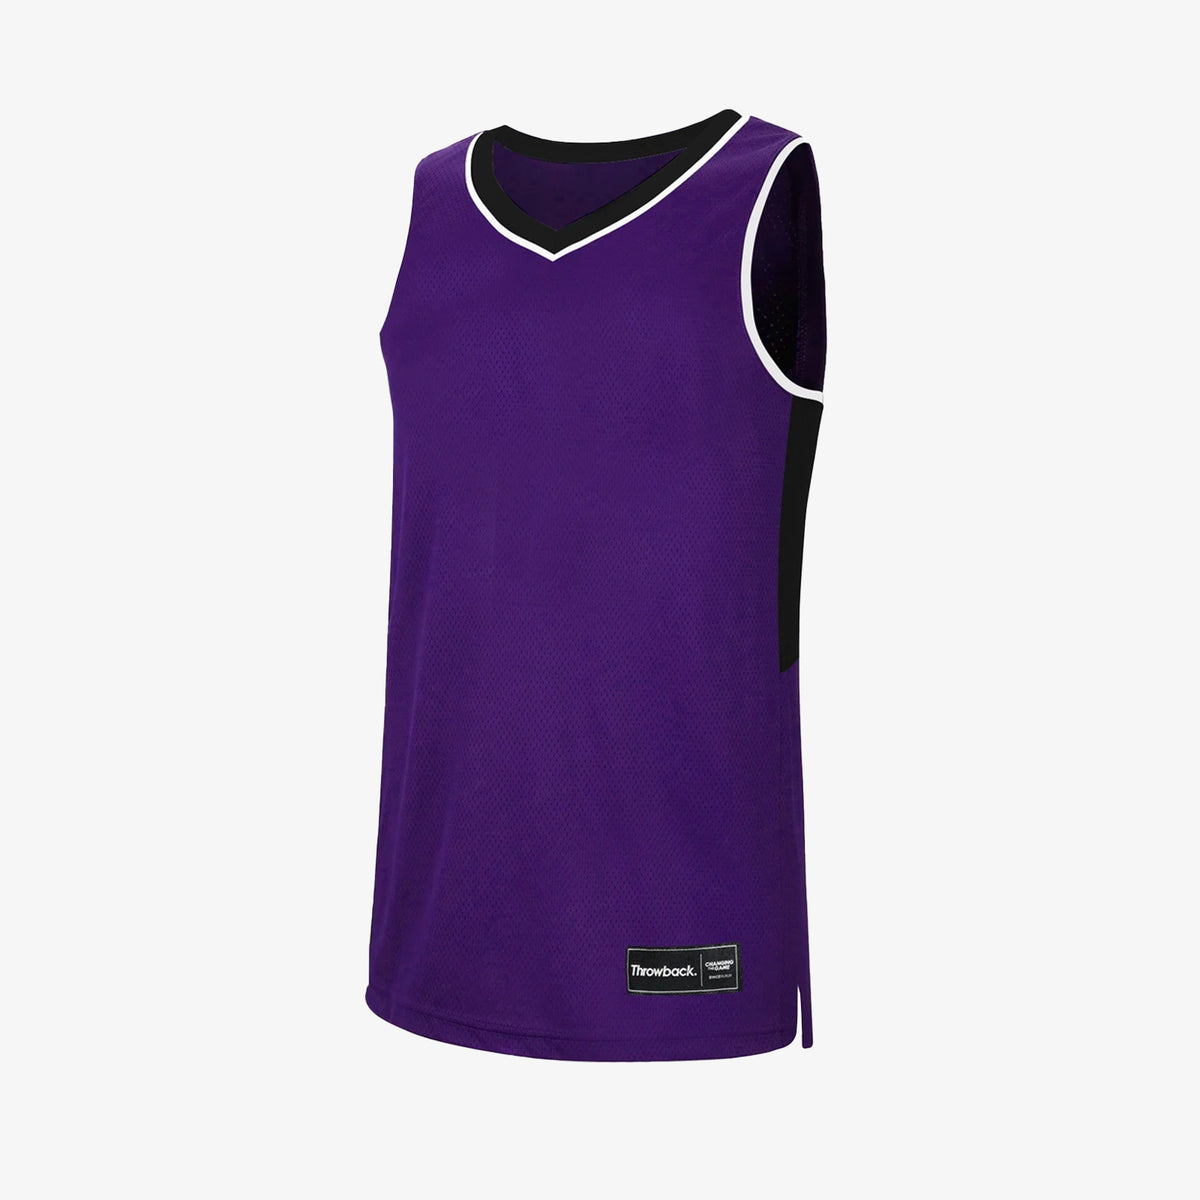 Throwback Oncourt Pro Jersey - Purple/Black/Grey